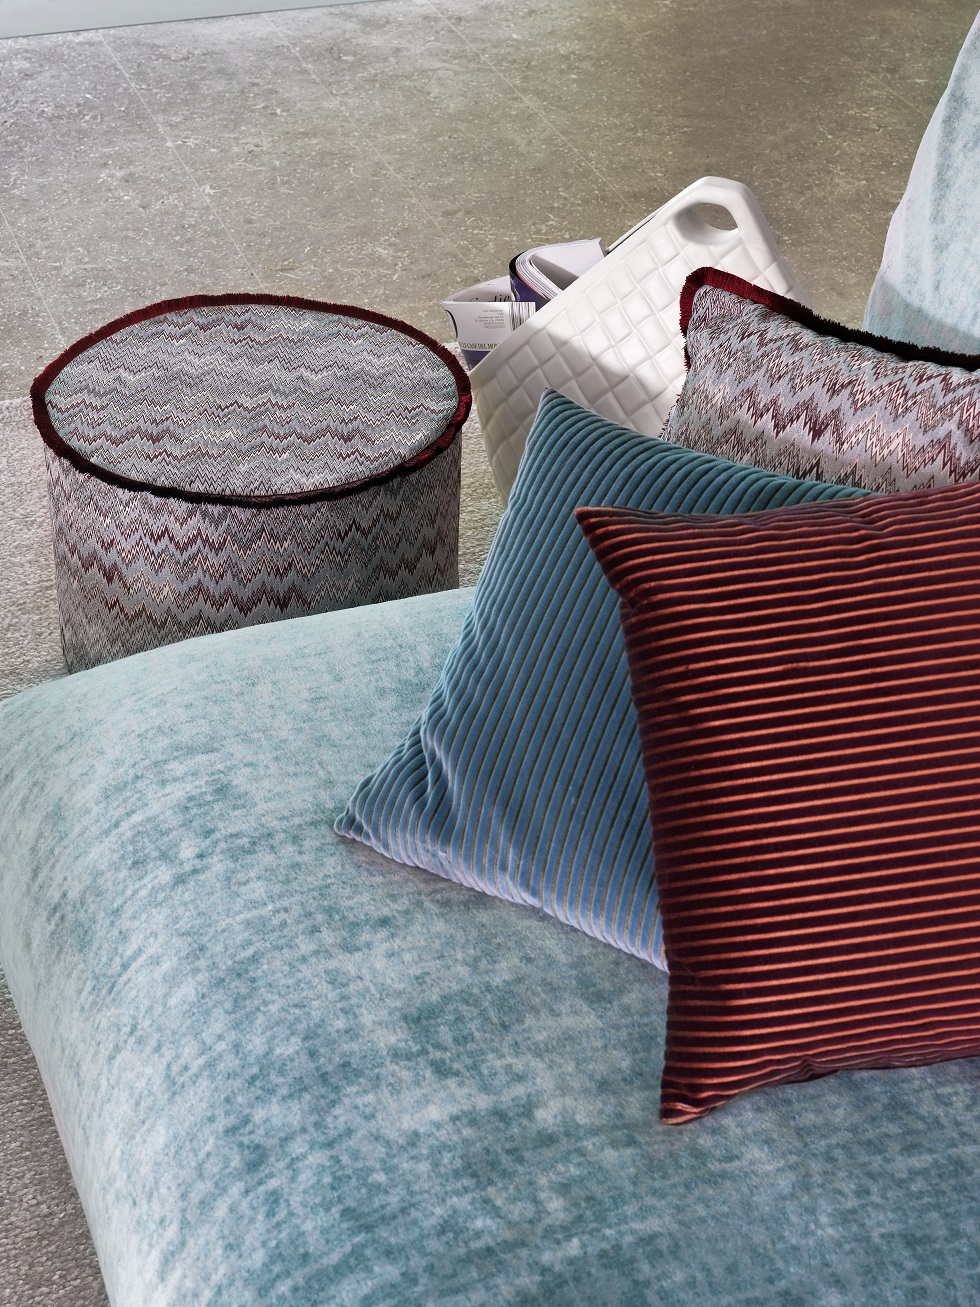 MISSONI HOME PRESENTS SPRING TRENDS 2017